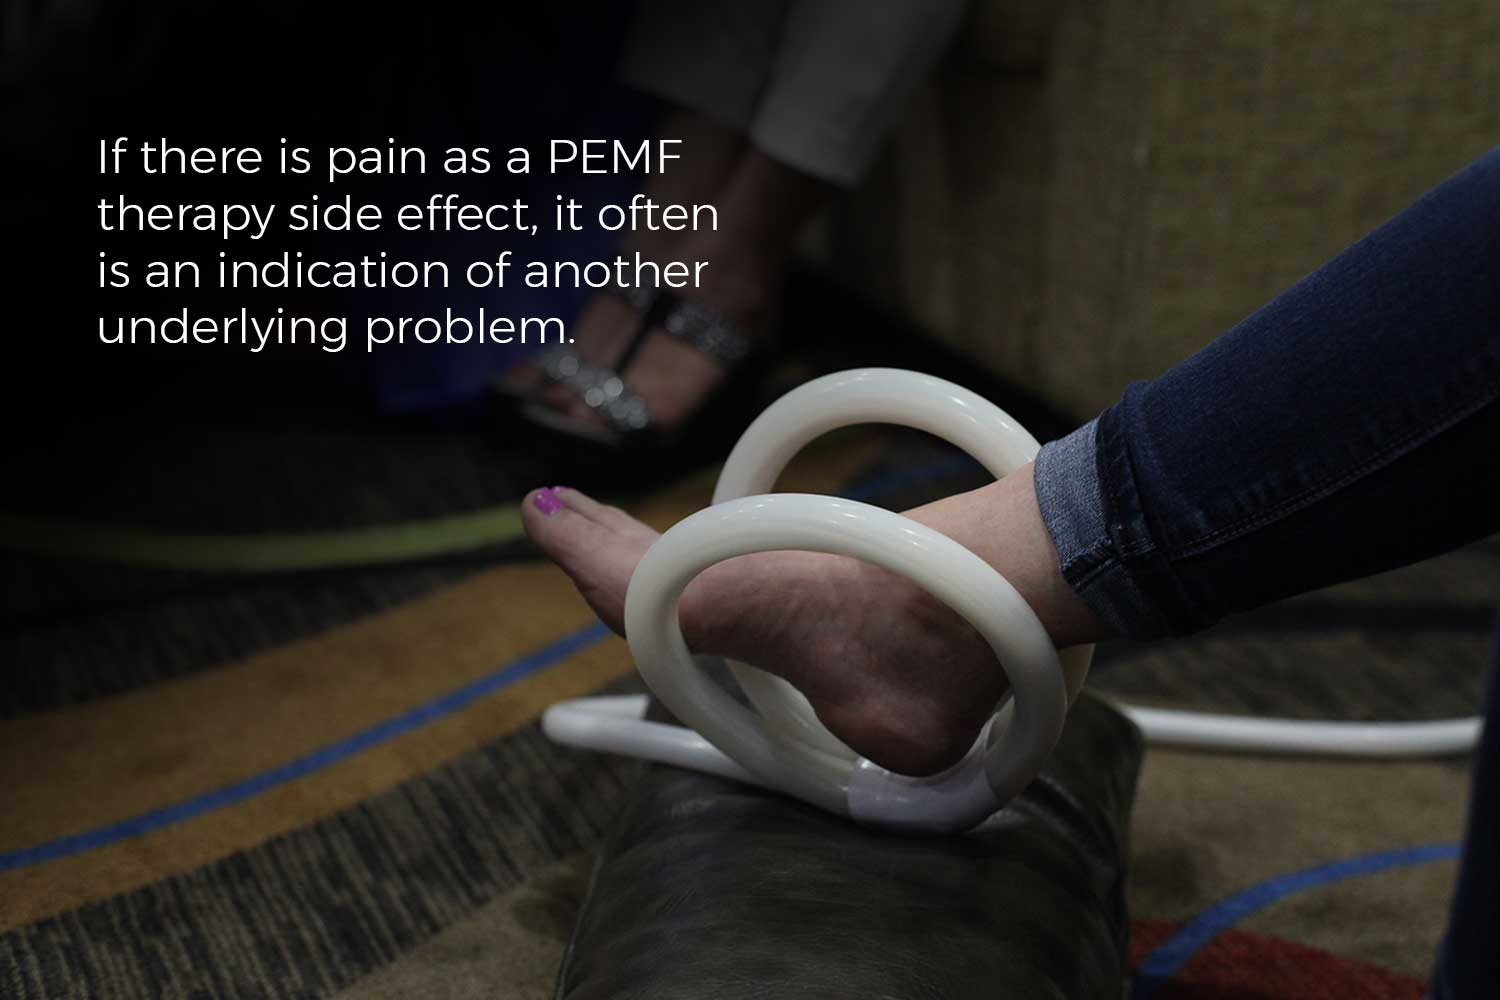 If there is pain as a PEMF therapy side effect, it often is an indication of another underlying problem.